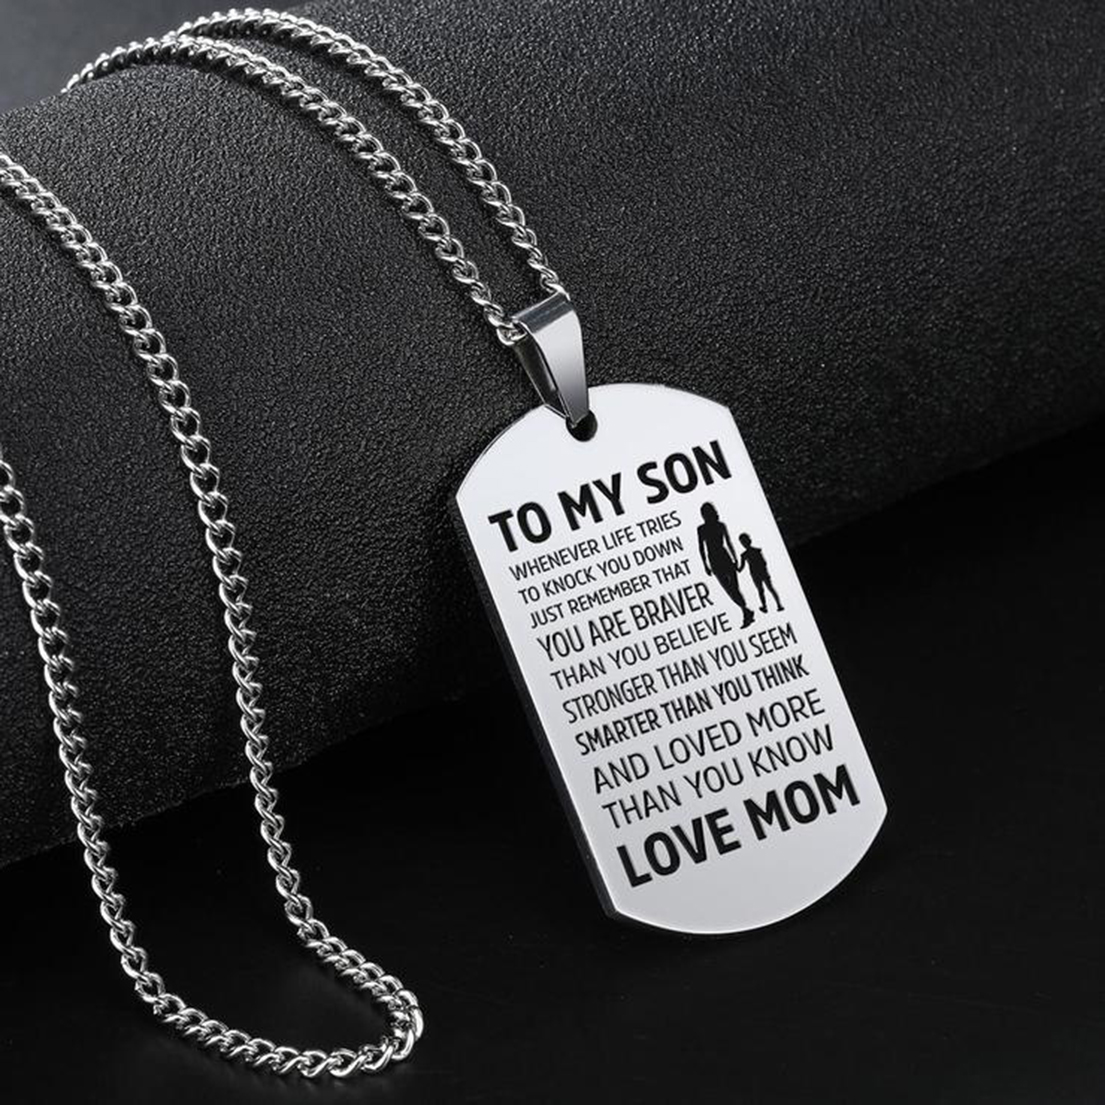 To my son Whenever life tries to knock you down love mom necklace dog tag - Picture 1